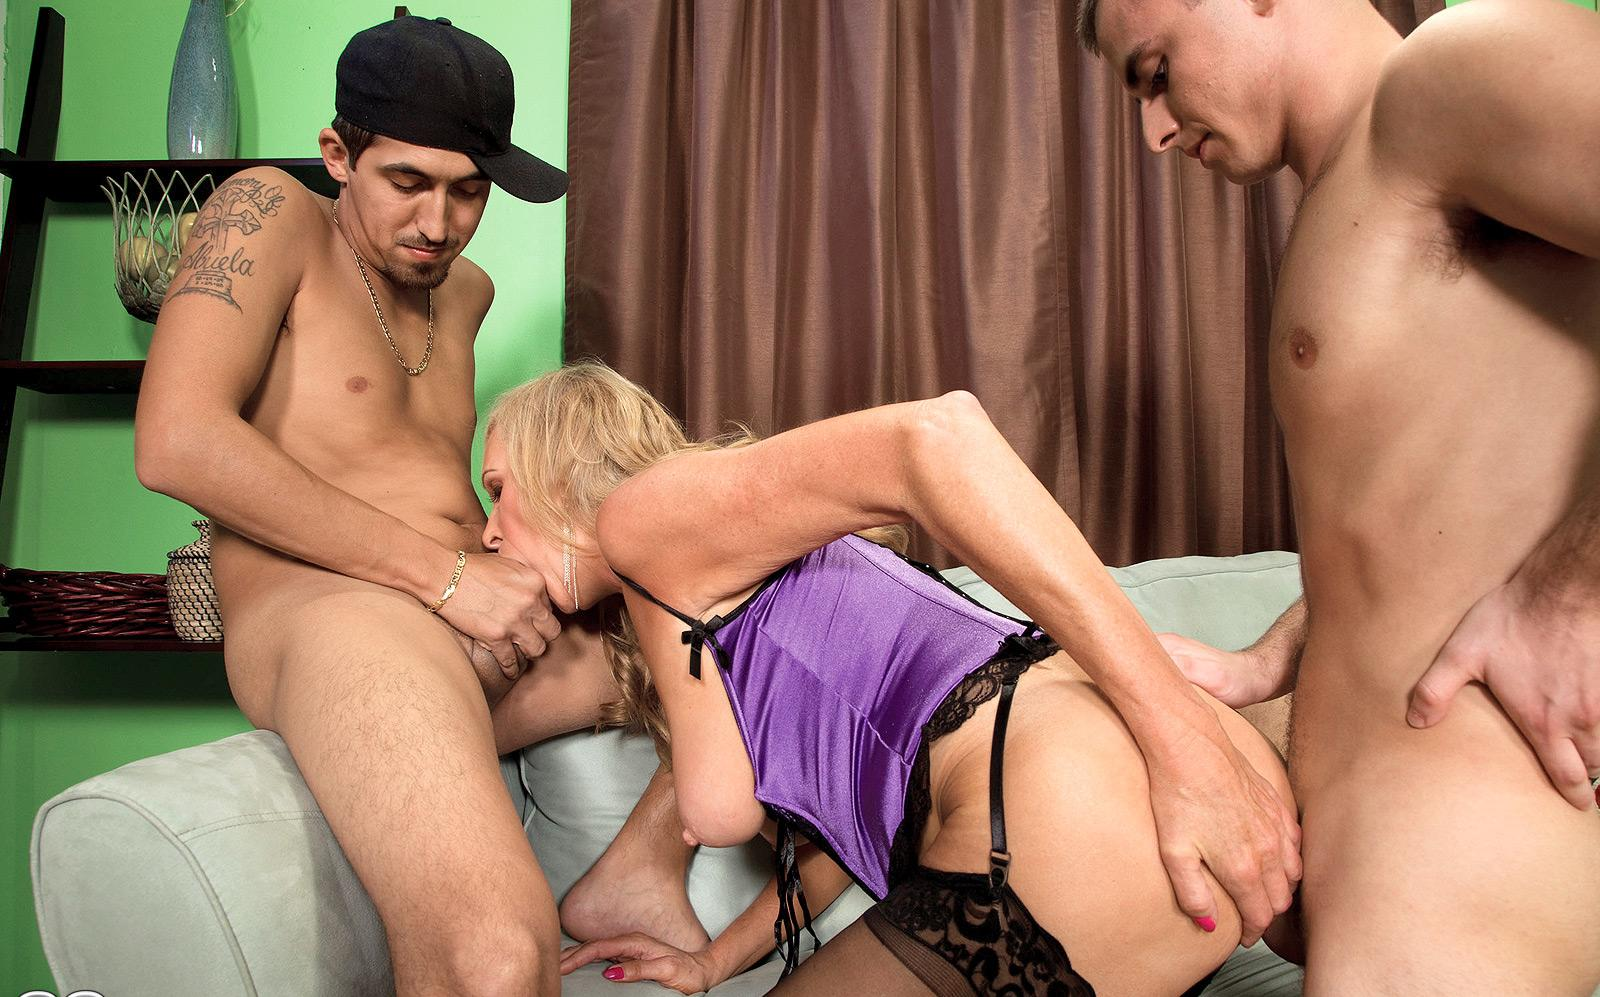 Karissa a lusty granny gangbanged by two young studs